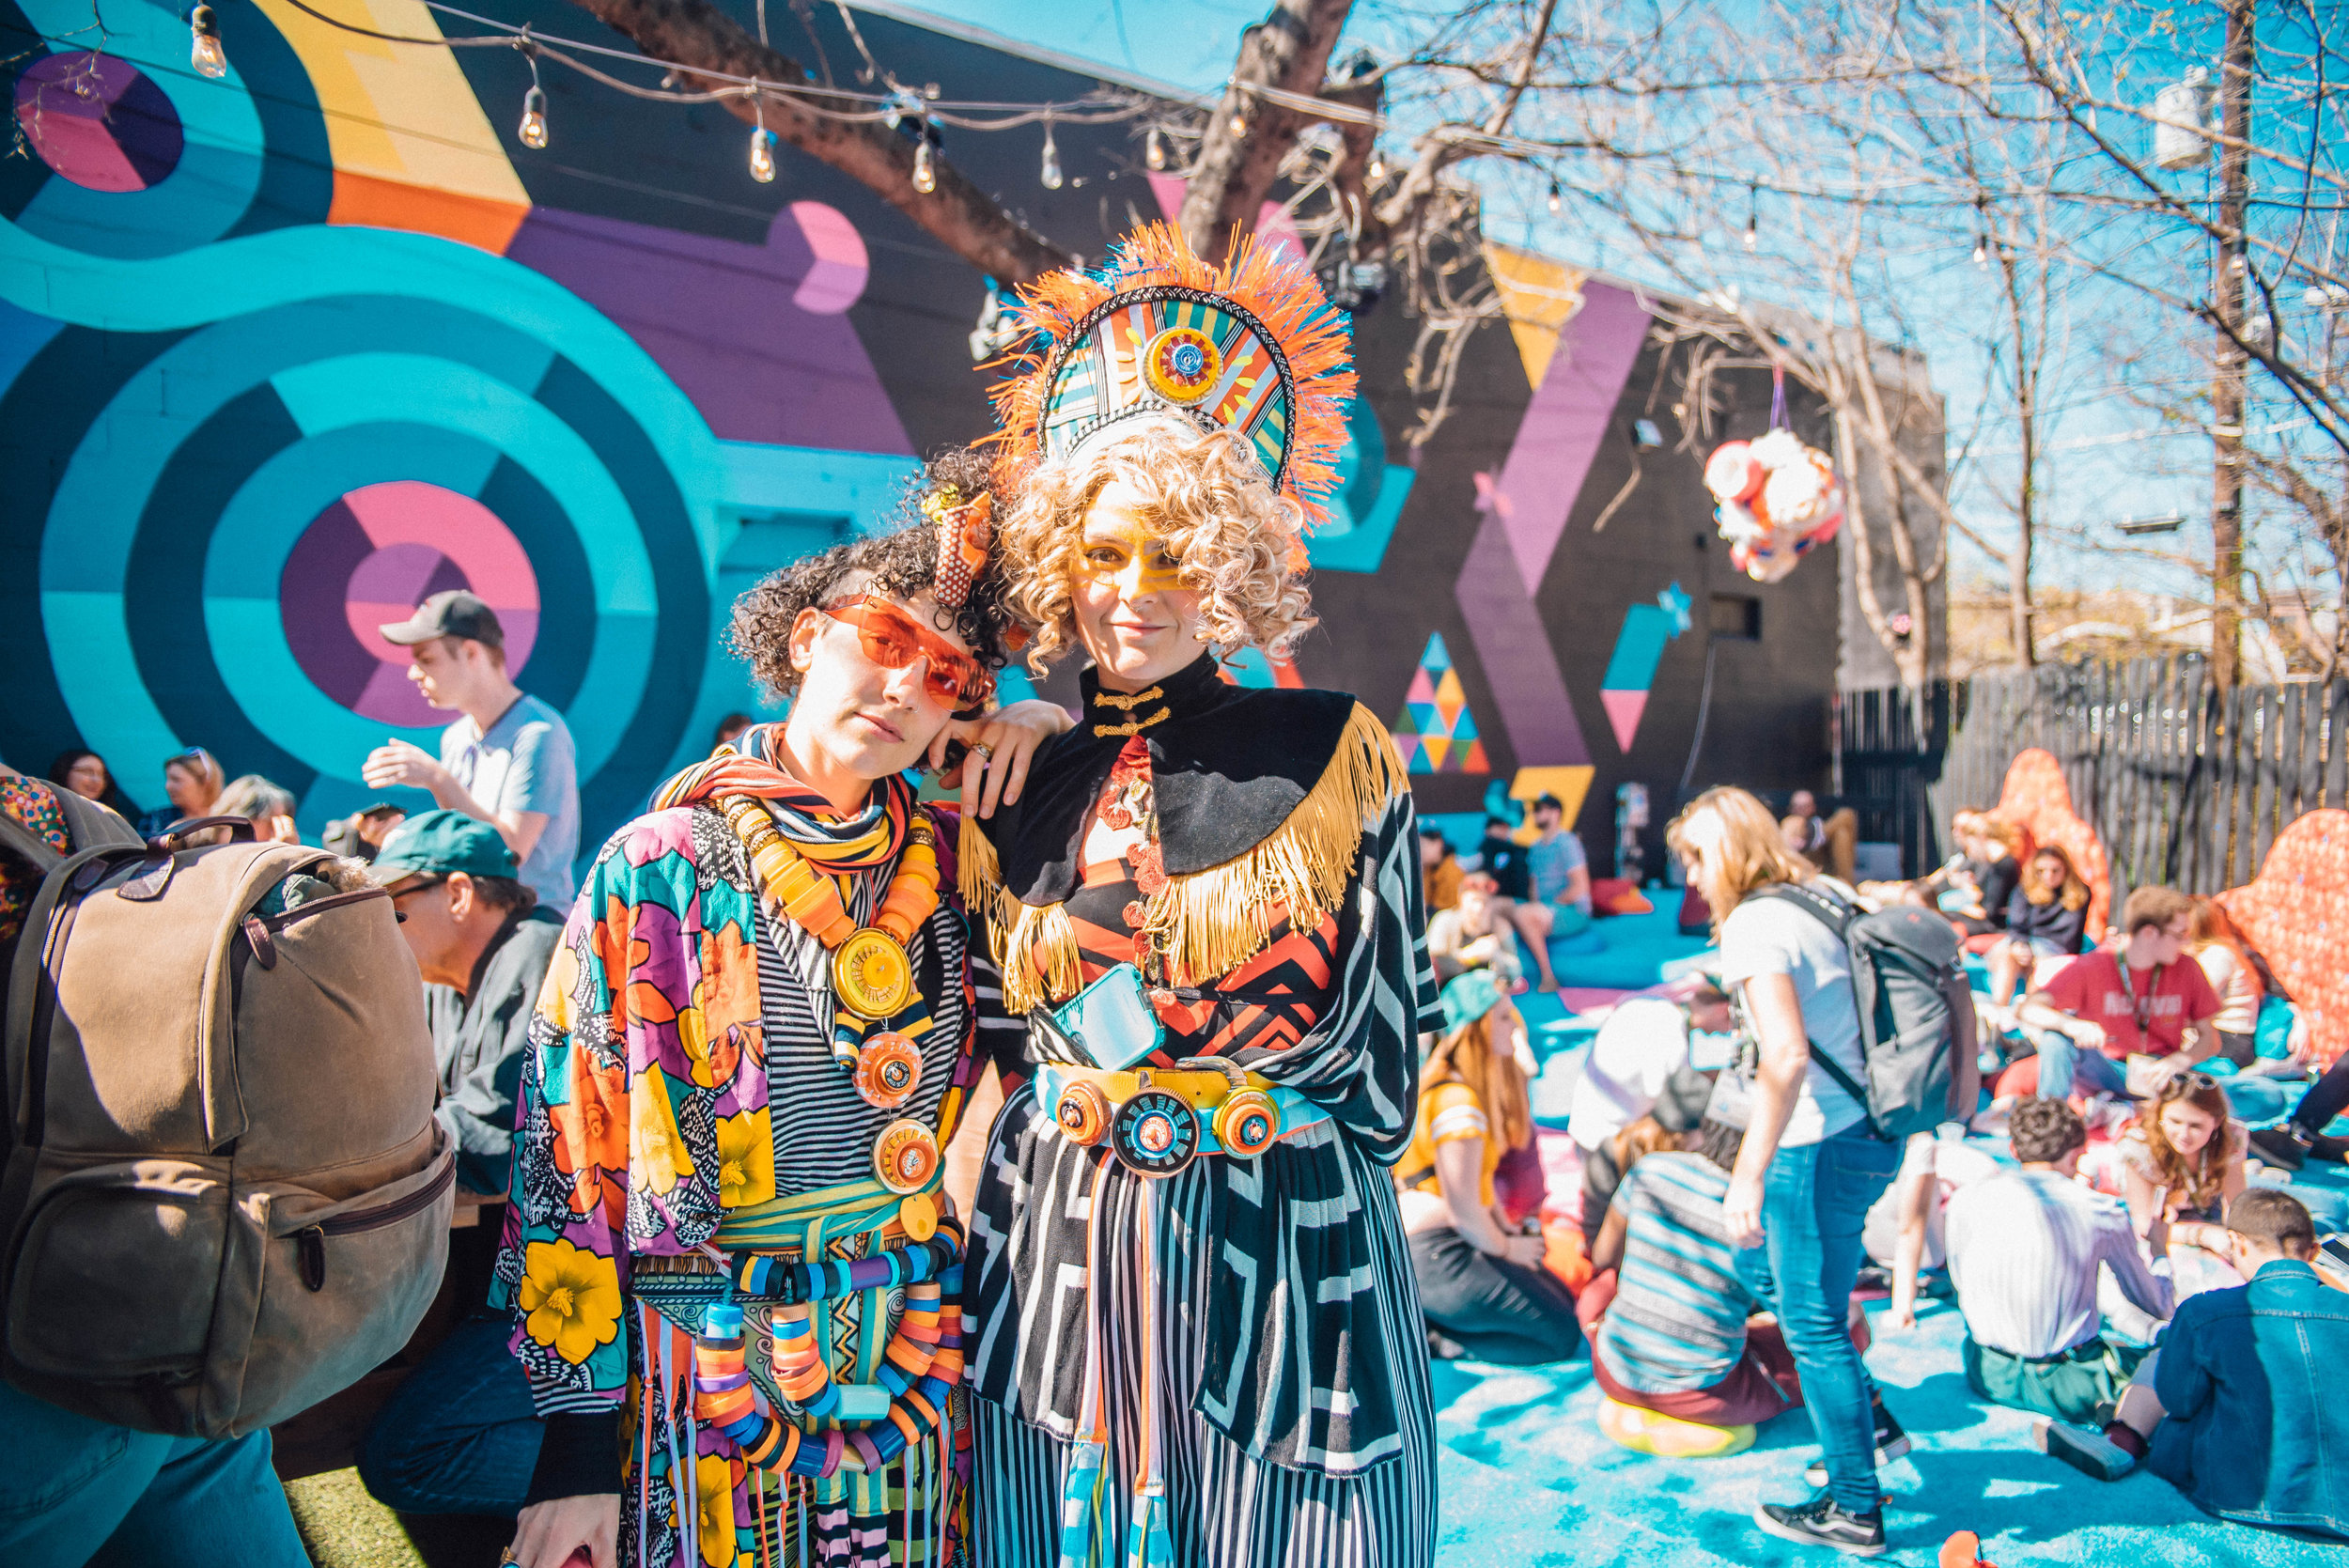 Meow Wolf Party at SXSW 2018 | Jordan Hefler